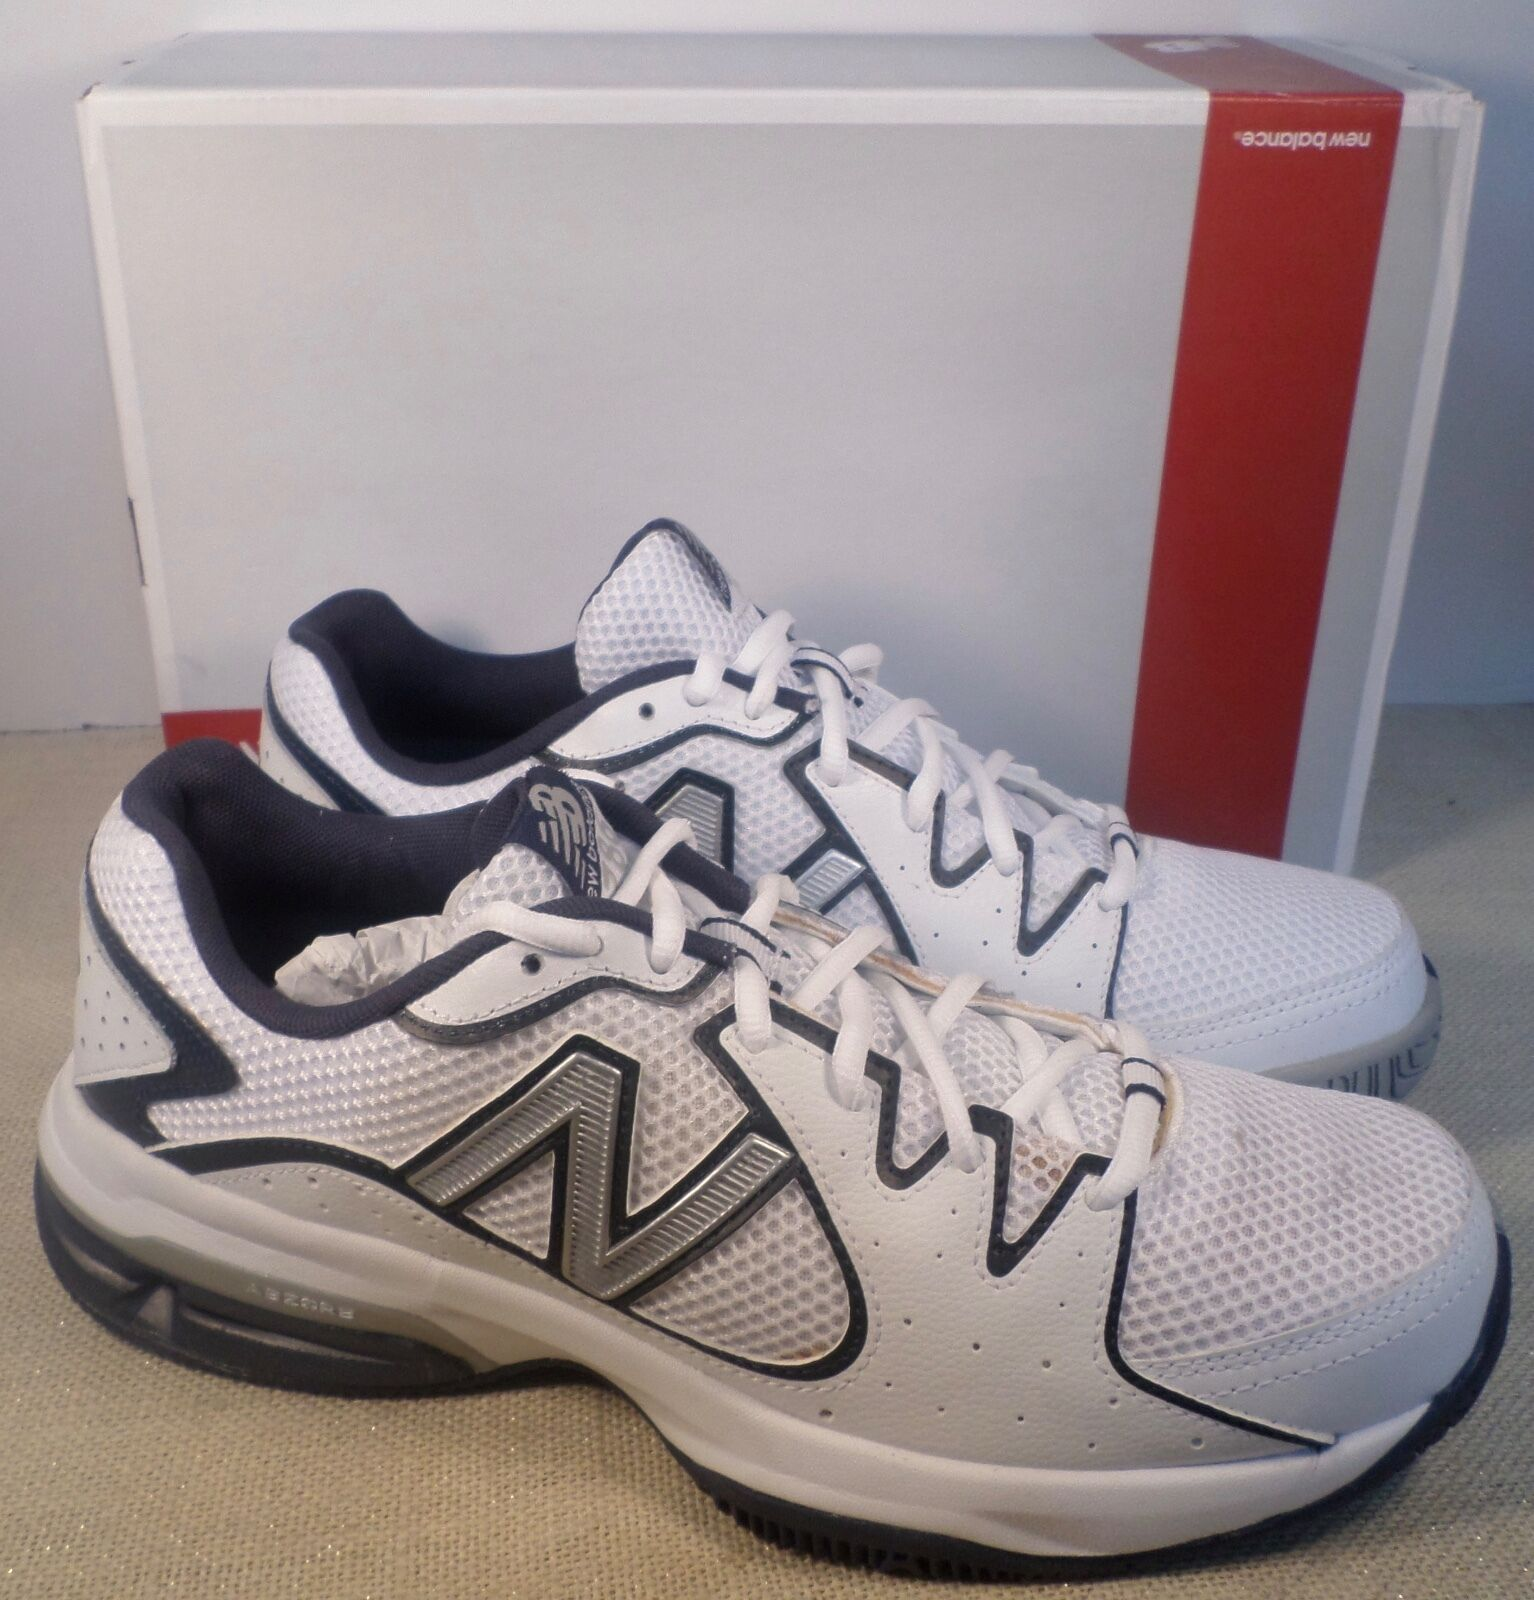 NEW BALANCE MC786WN MEN'S WHITE blueE ATHLETIC SNEAKERS NEW IN BOX